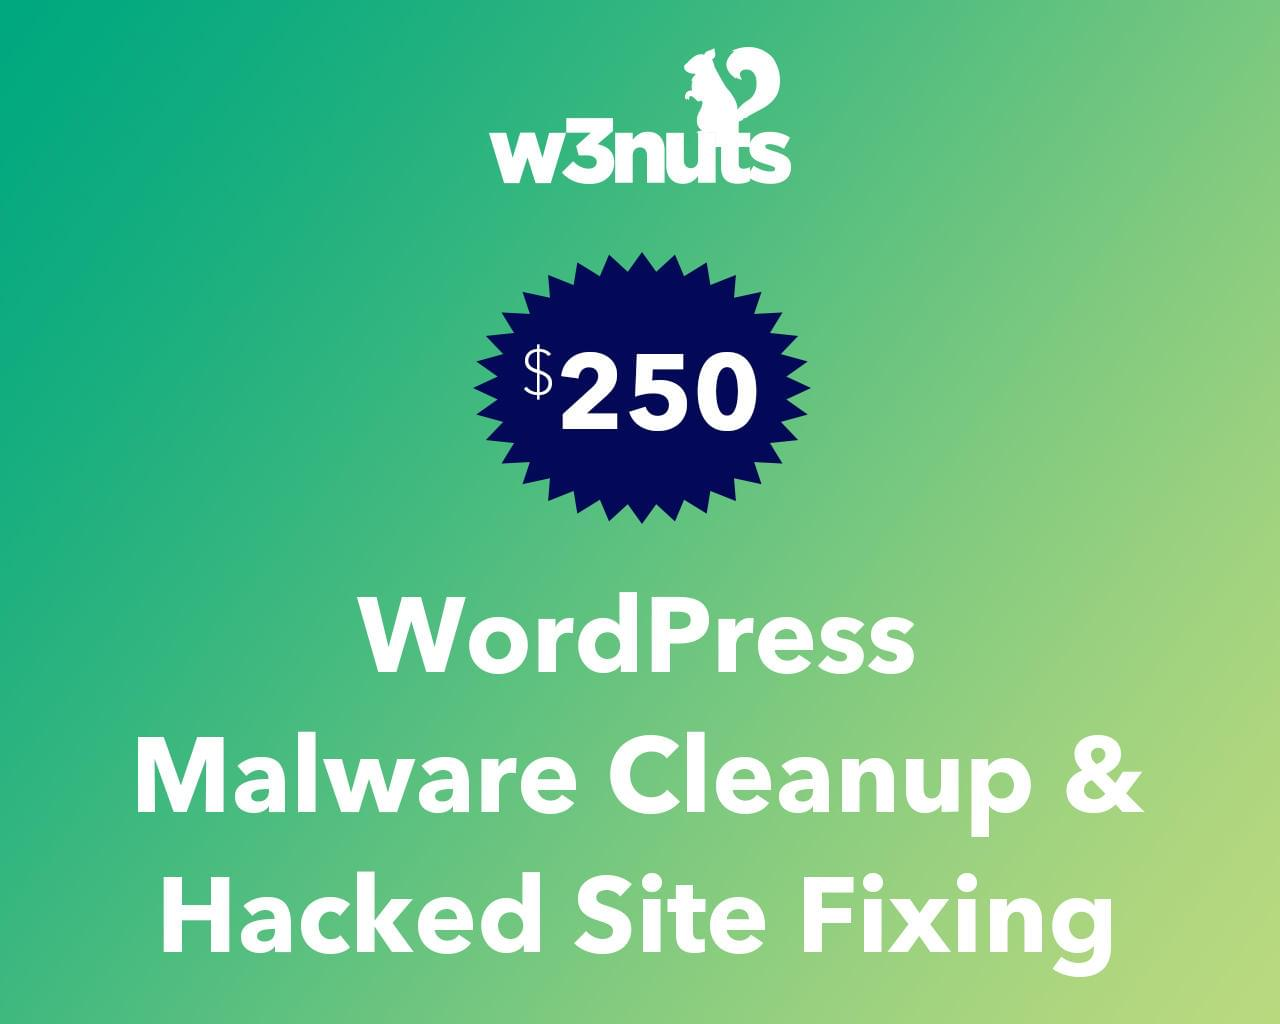 WordPress Malware Cleanup & Hacked Site Fixing by samirkaila - 116085